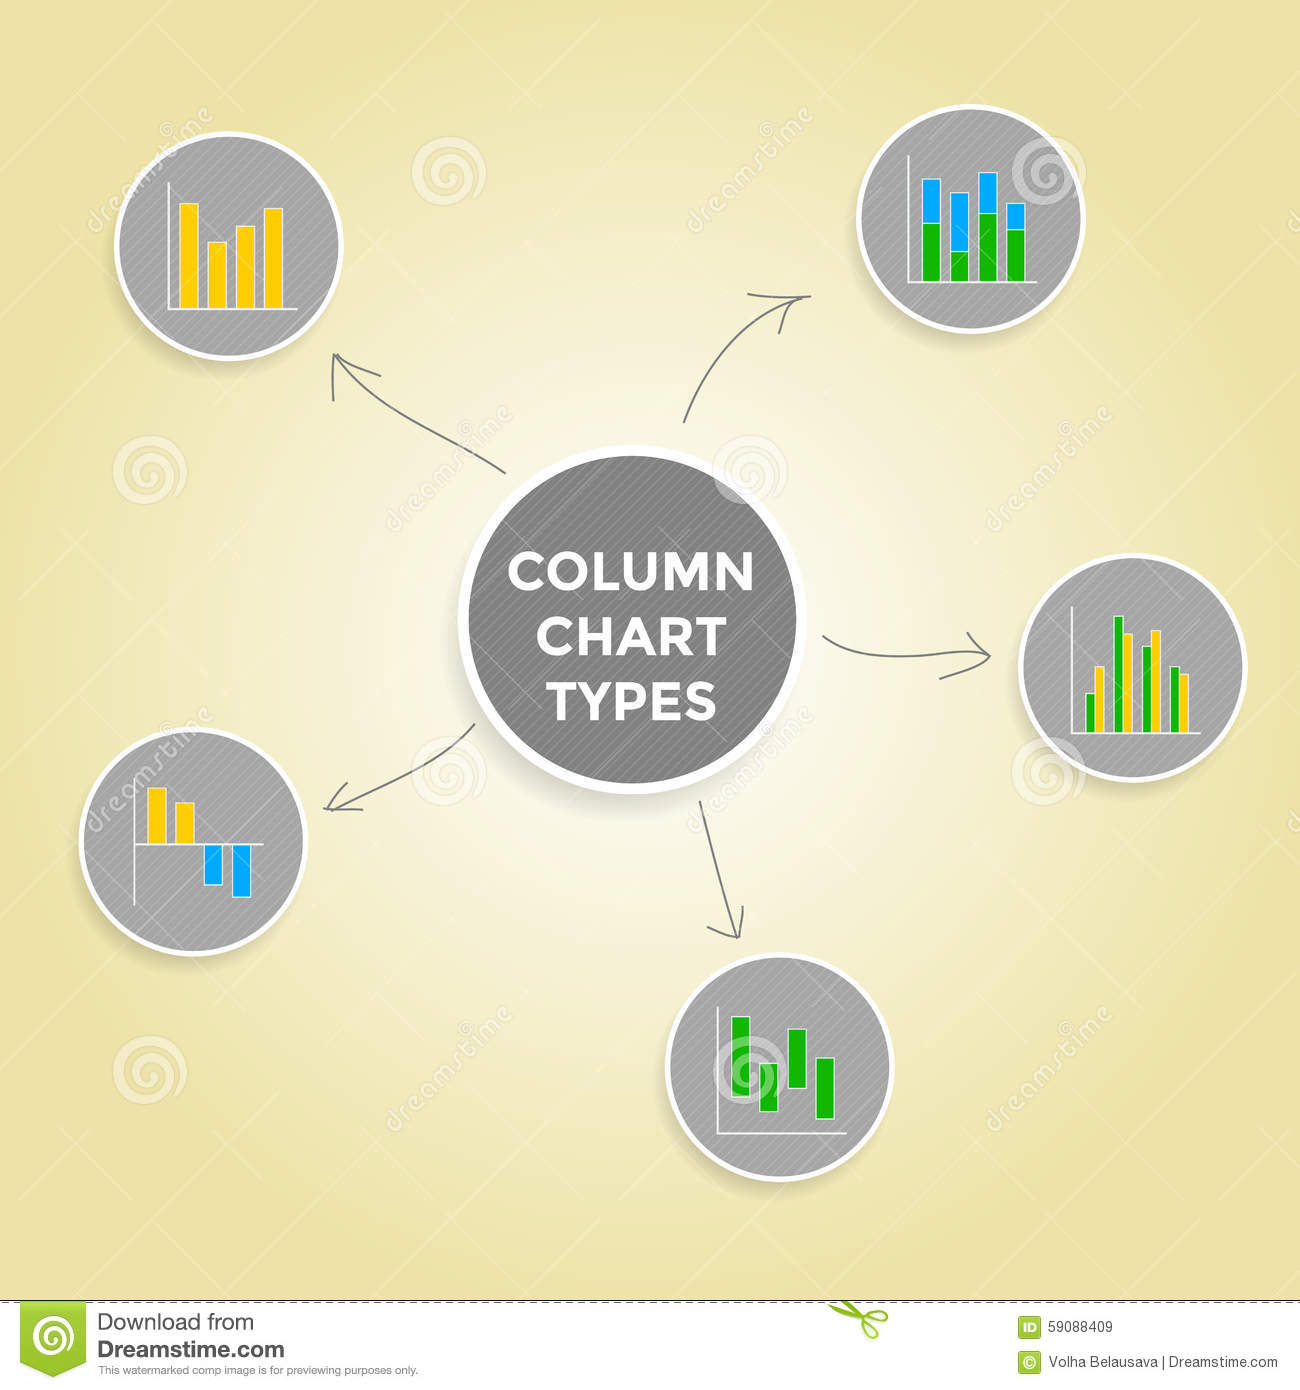 Mind map column chart types set of infographic elements collection mind map column chart types set of infographic elements collection ccuart Choice Image